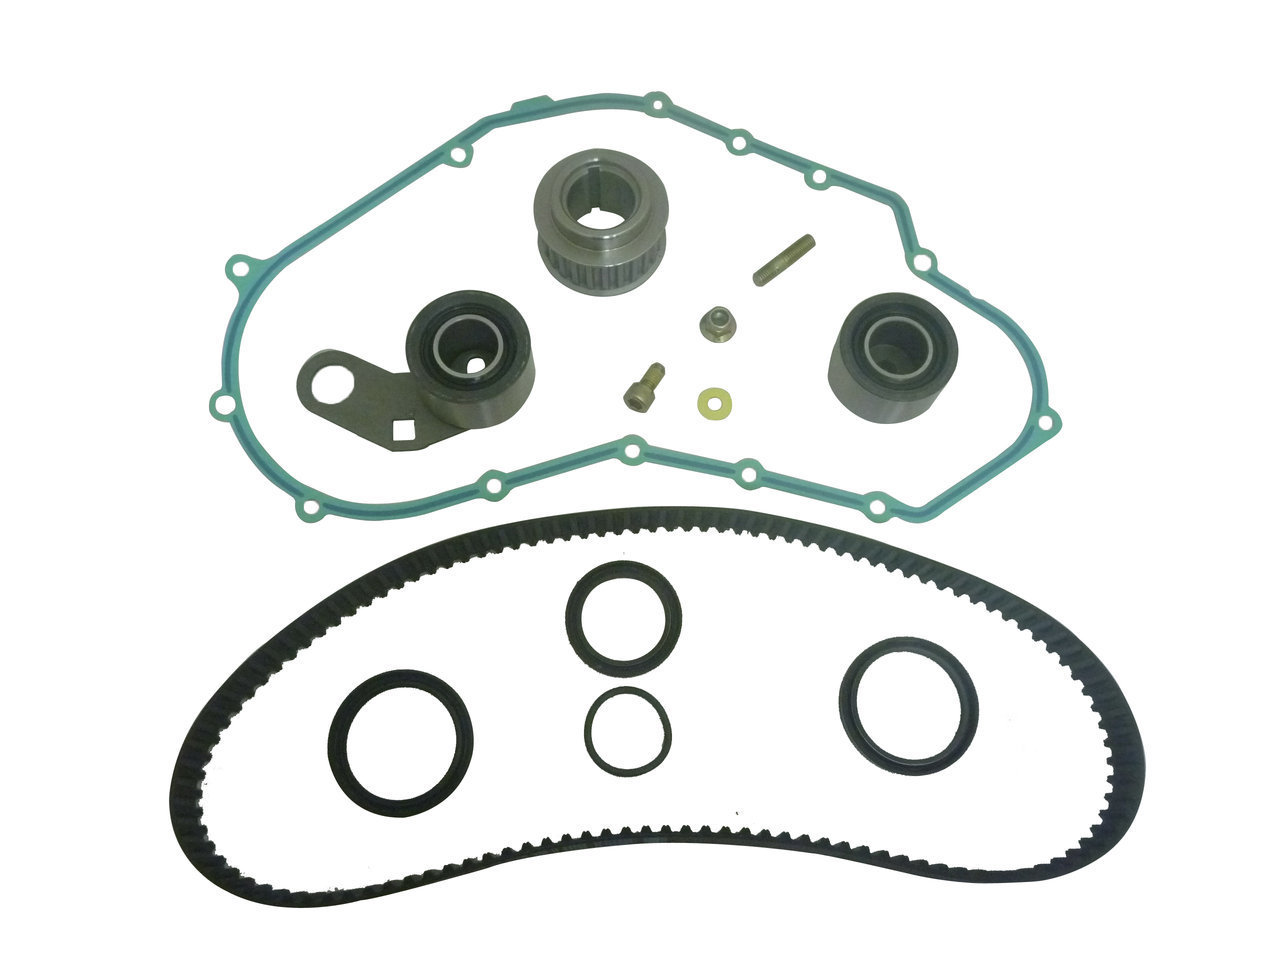 Rover Timing Belt Kit 300tdi Oil Seals Defender Discovery Range Incl 1 Classic Stc4096lkit